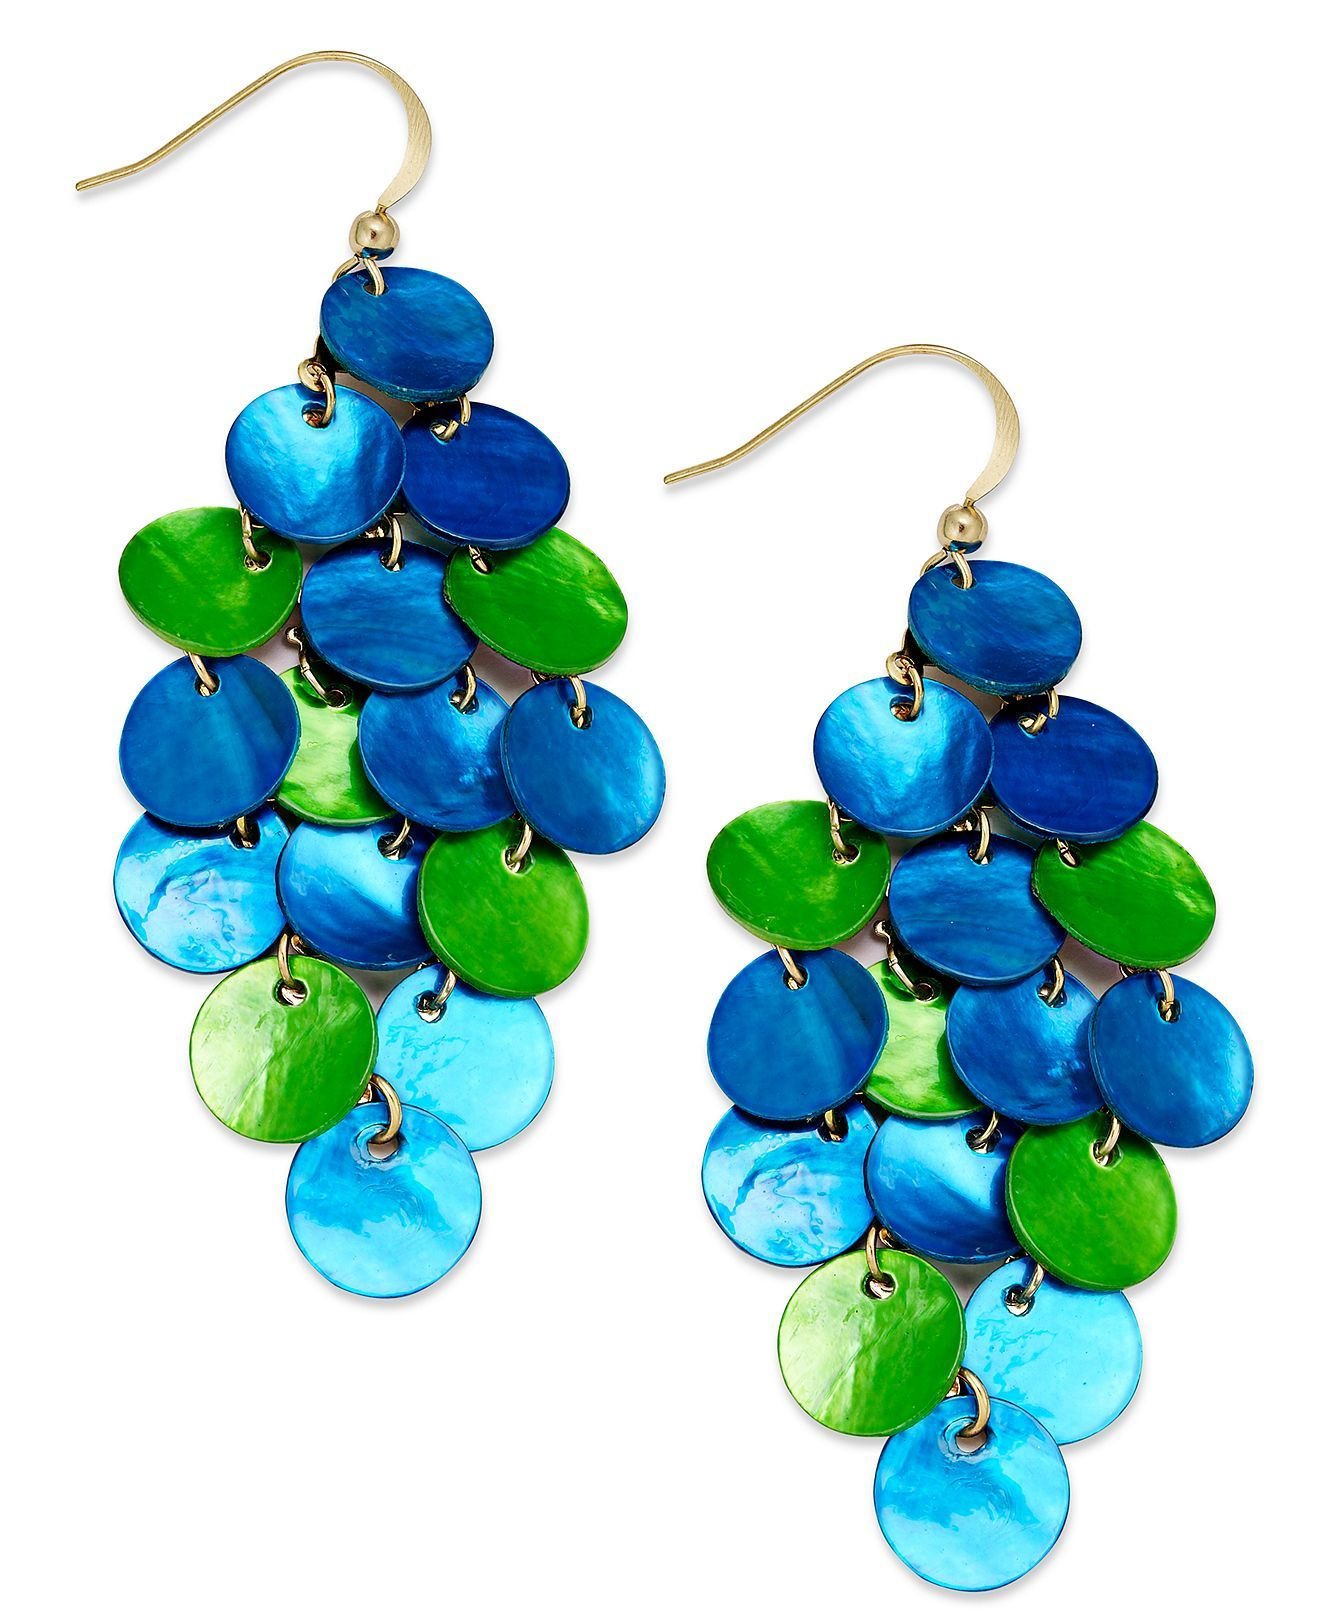 Style earrings gold tone blue and green disc chandelier earrings earrings gold tone blue and green disc chandelier earrings fashion earrings macys arubaitofo Choice Image